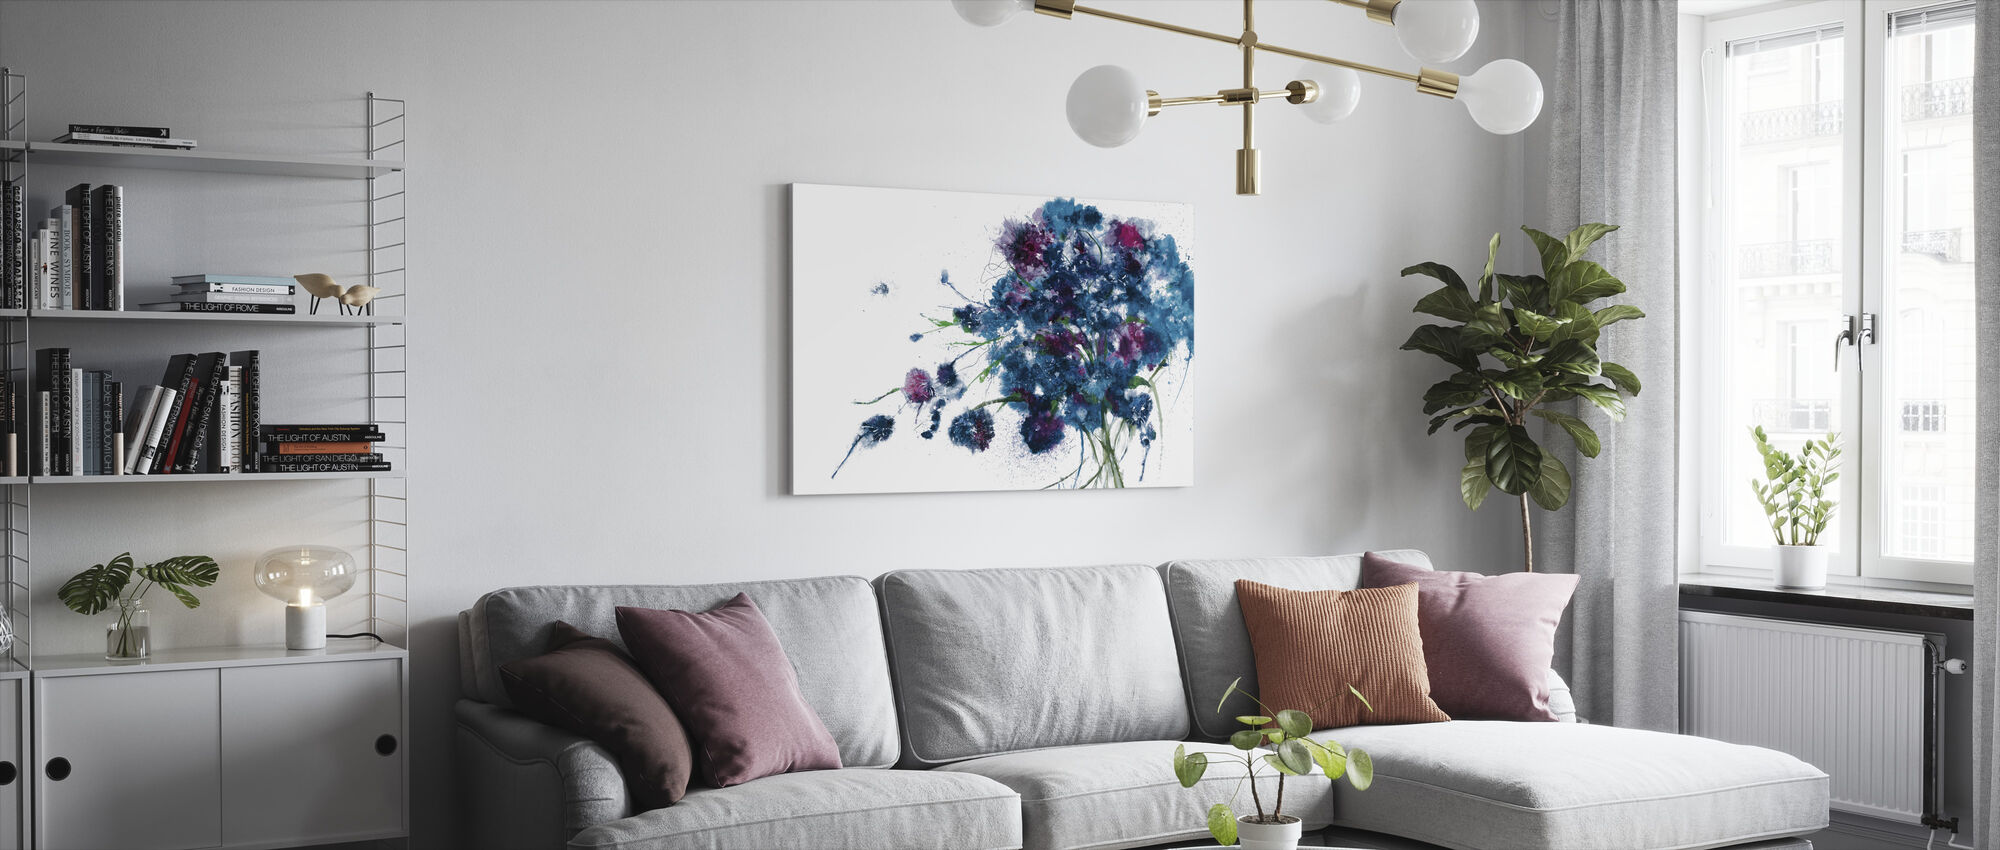 Blue Bouquet - Canvas print - Living Room